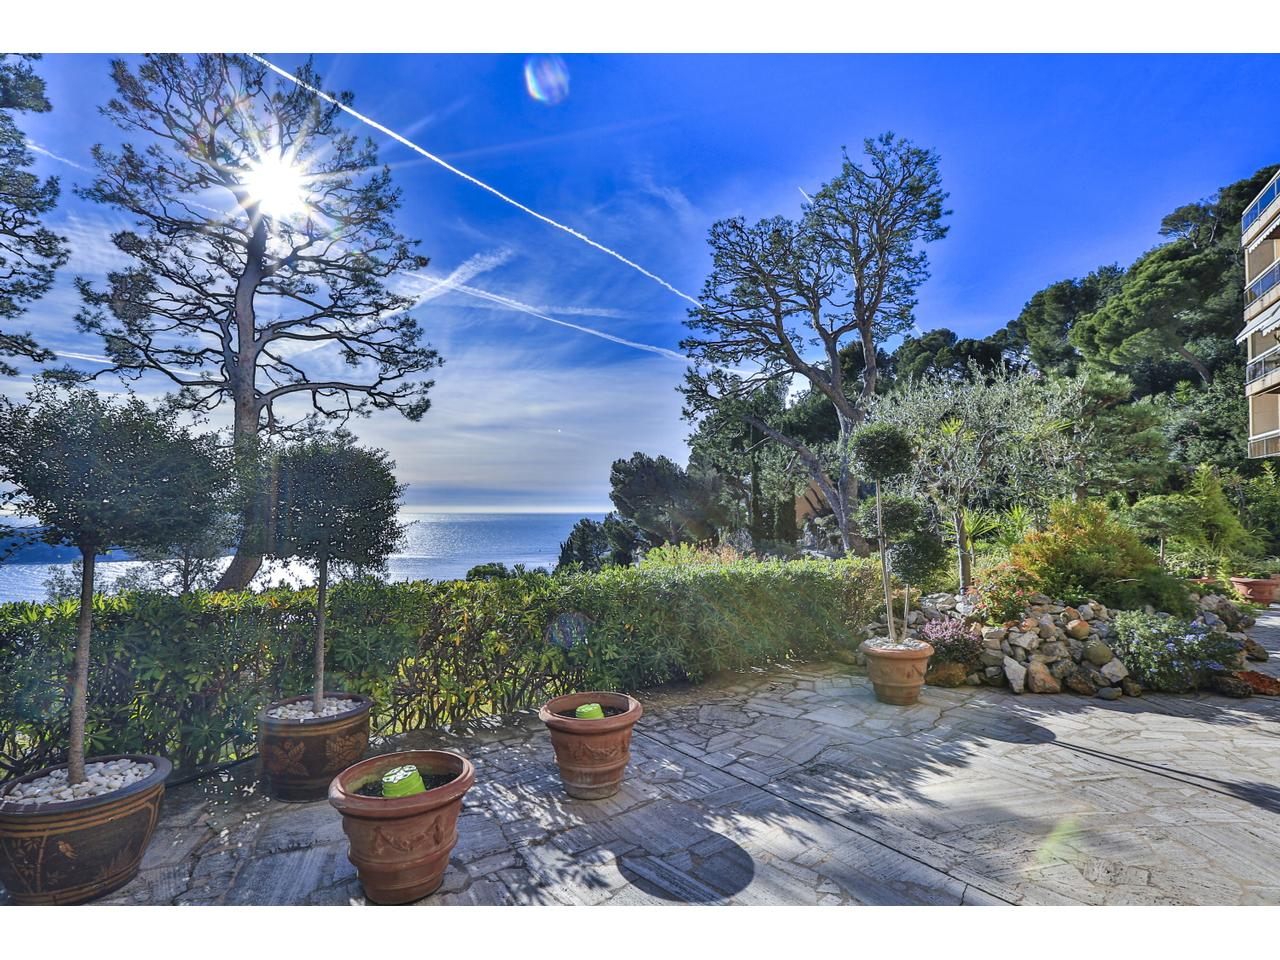 Villefranche large apartment with sea view and garden